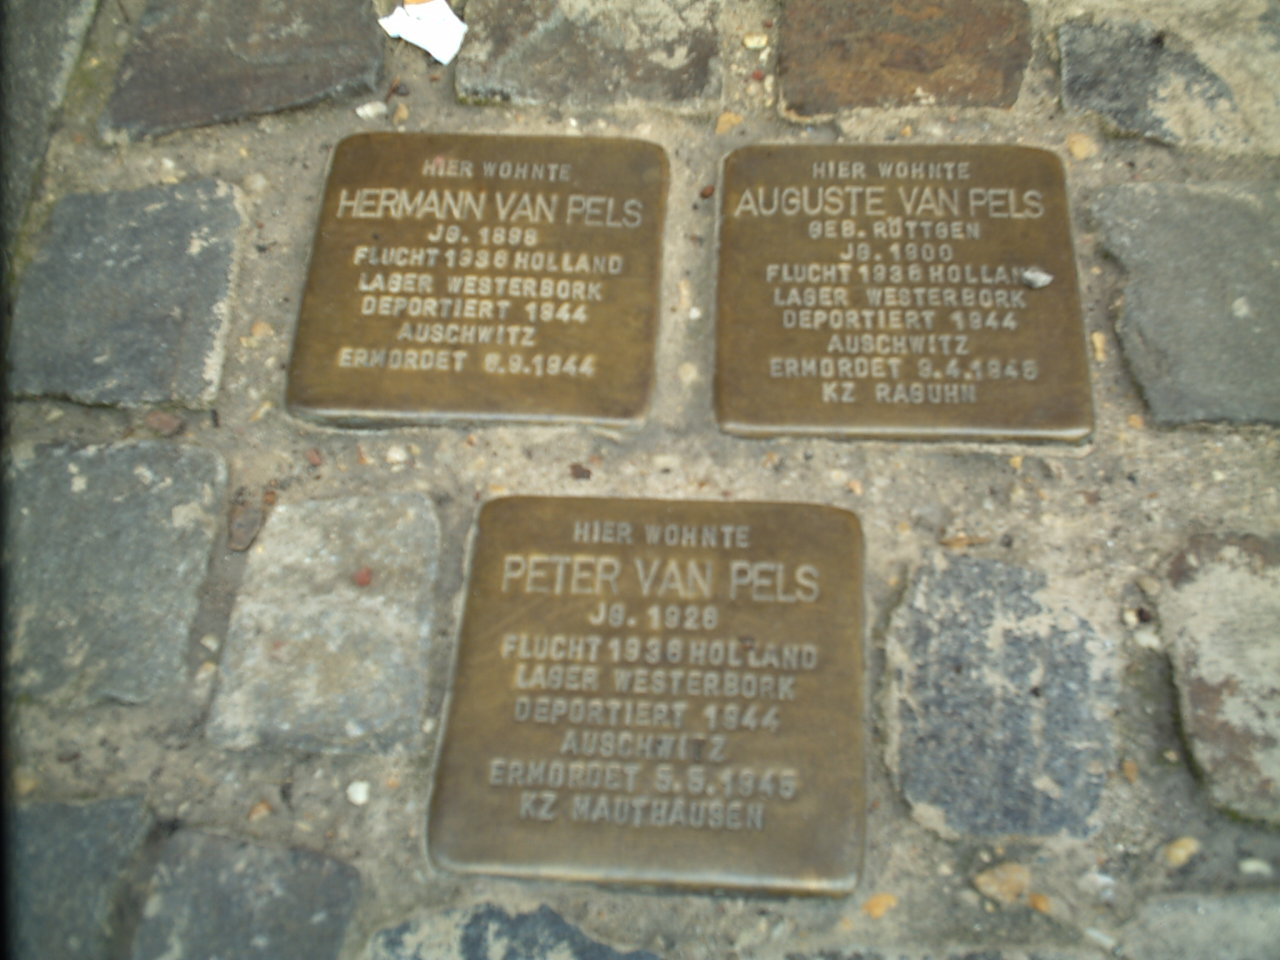 https://upload.wikimedia.org/wikipedia/commons/2/24/StolpersteinOS01.JPG